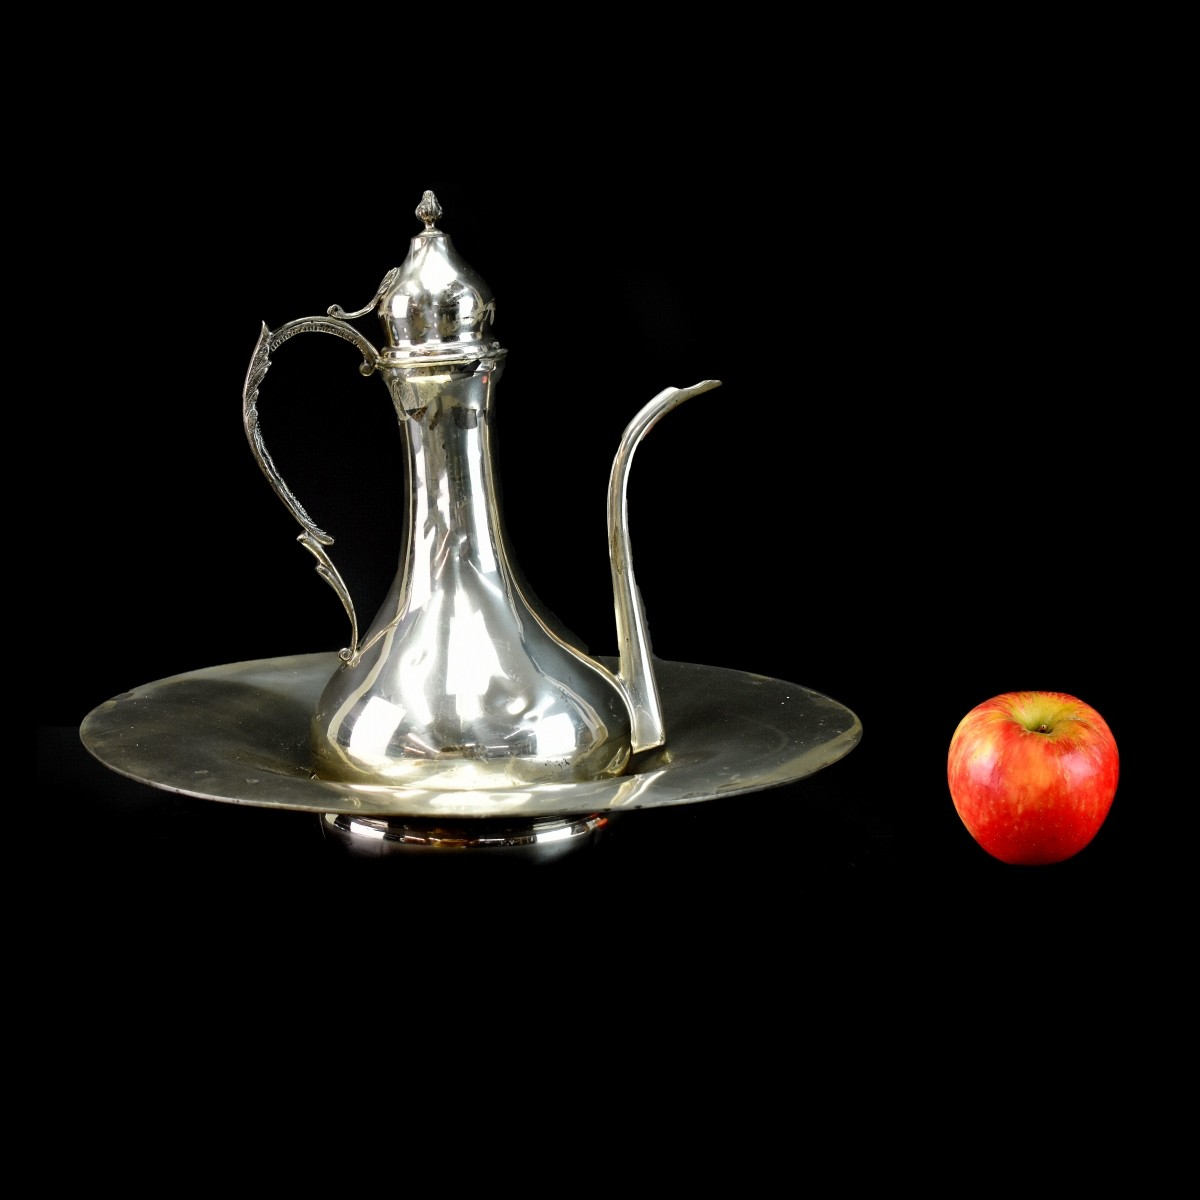 Suleyman 900 Silver Turkish Ewer and Wash Basin.